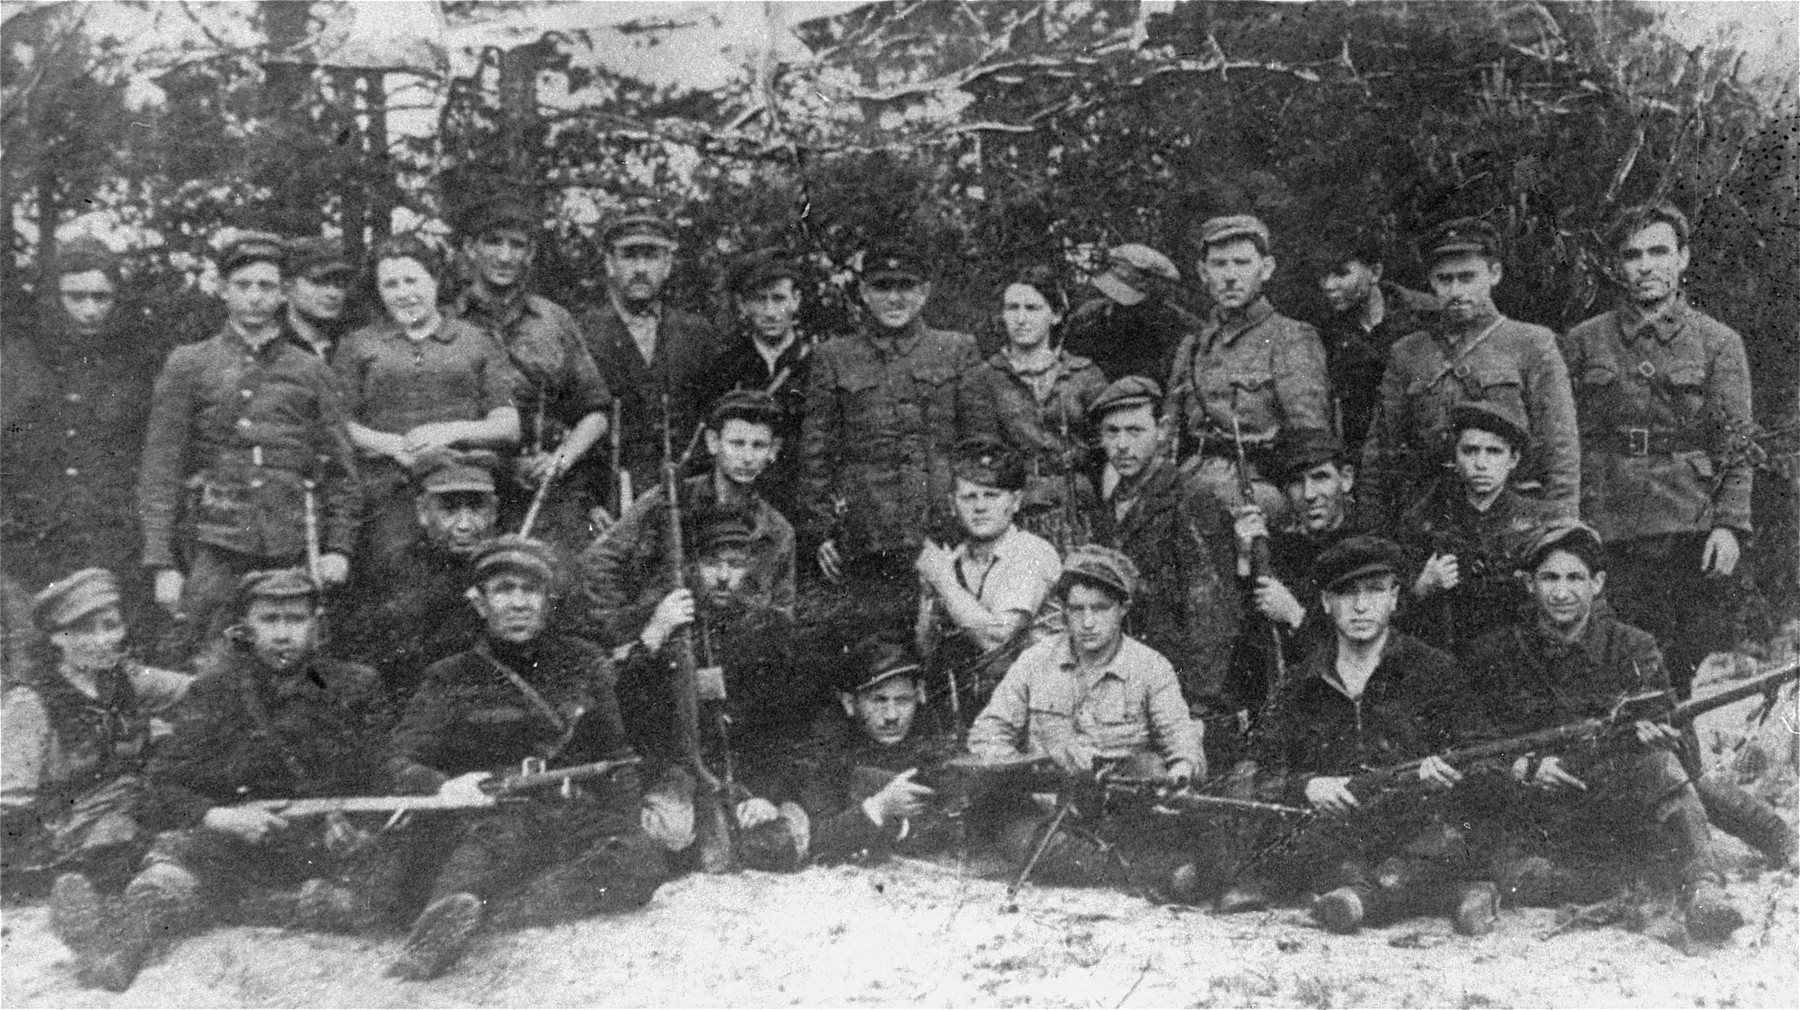 A group of partisans from various fighting units including the Bielski group and escapees from the Mir Ghetto on guard duty at an airstrip in the Naliboki Forest.  Among those pictured is Commander Nowiczki, standing first on the right; Joseph Kozlowski (now Kazlow), top row, second from right;  Solomon Golanski is pictured at the bottom right; Josef Kessler is in the center wearing a short white sleeve shirt;  [Behind him might be Hershl Goldhamer; Seated in the center might be Esia Schorr (a cousin of the Bielskis)]; Standing second from the left is  Zeev Schriber; Sitting third from the left (below the standing woman partisan ) is Berkowitz; both from Mir Ghetto;  Gershon Seigel (b. 1926, Slonim) is standing third from the right.  Yehuda Bielski (later Bell) is lying down with his gun in the front row, center.  Pictured seated second from the right is Saul Schadnow.